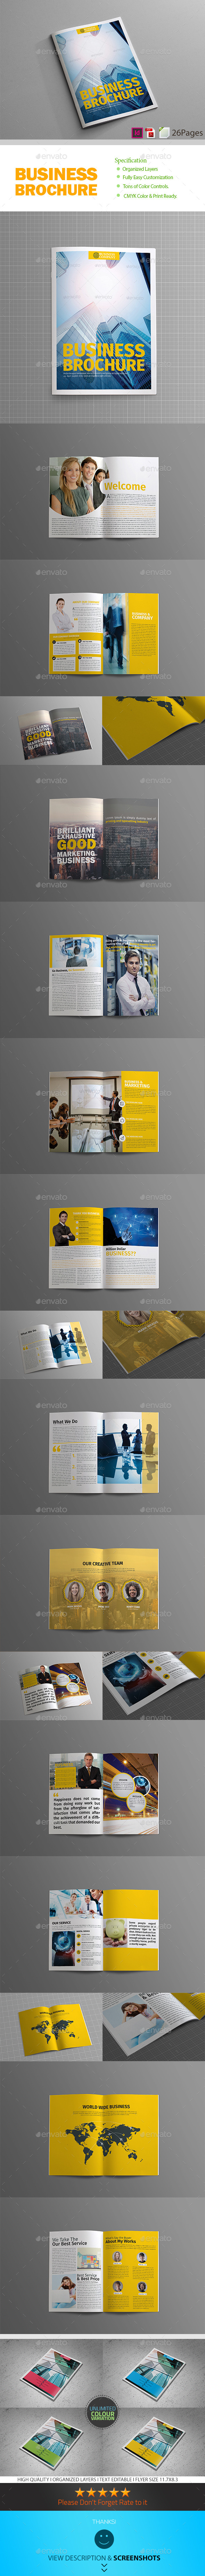 Business Plan - 26 Pages Business Brochure - Corporate Brochures